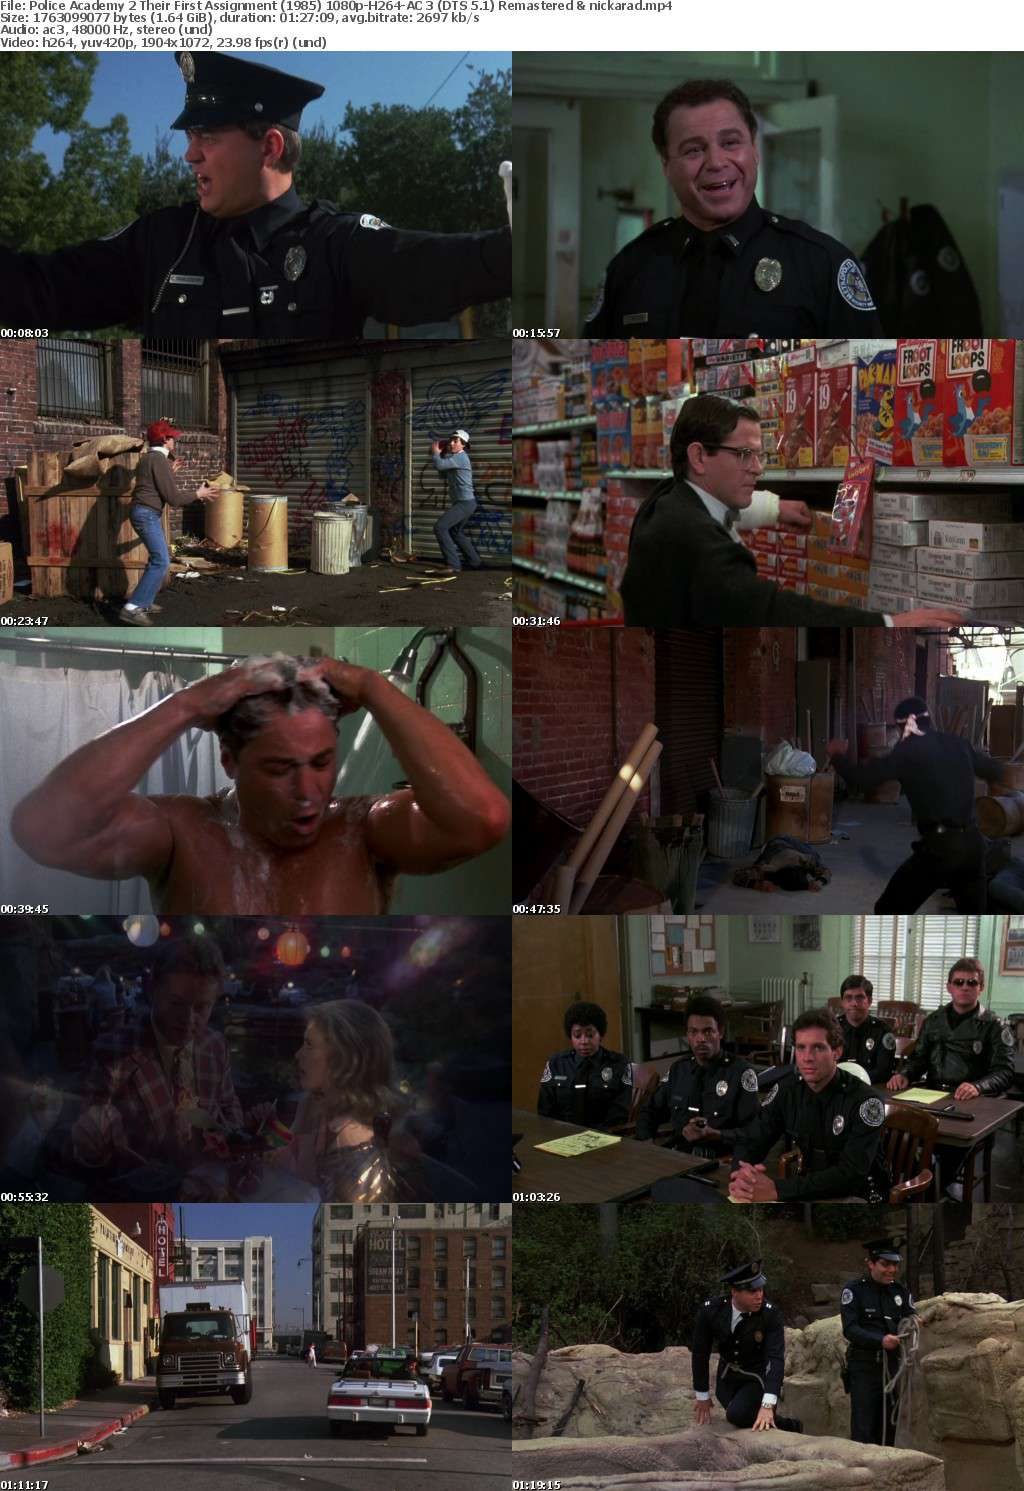 Police Academy 2 Their First Assignment (1985) 1080p BluRay H264 AC 3 Remastered-nickarad